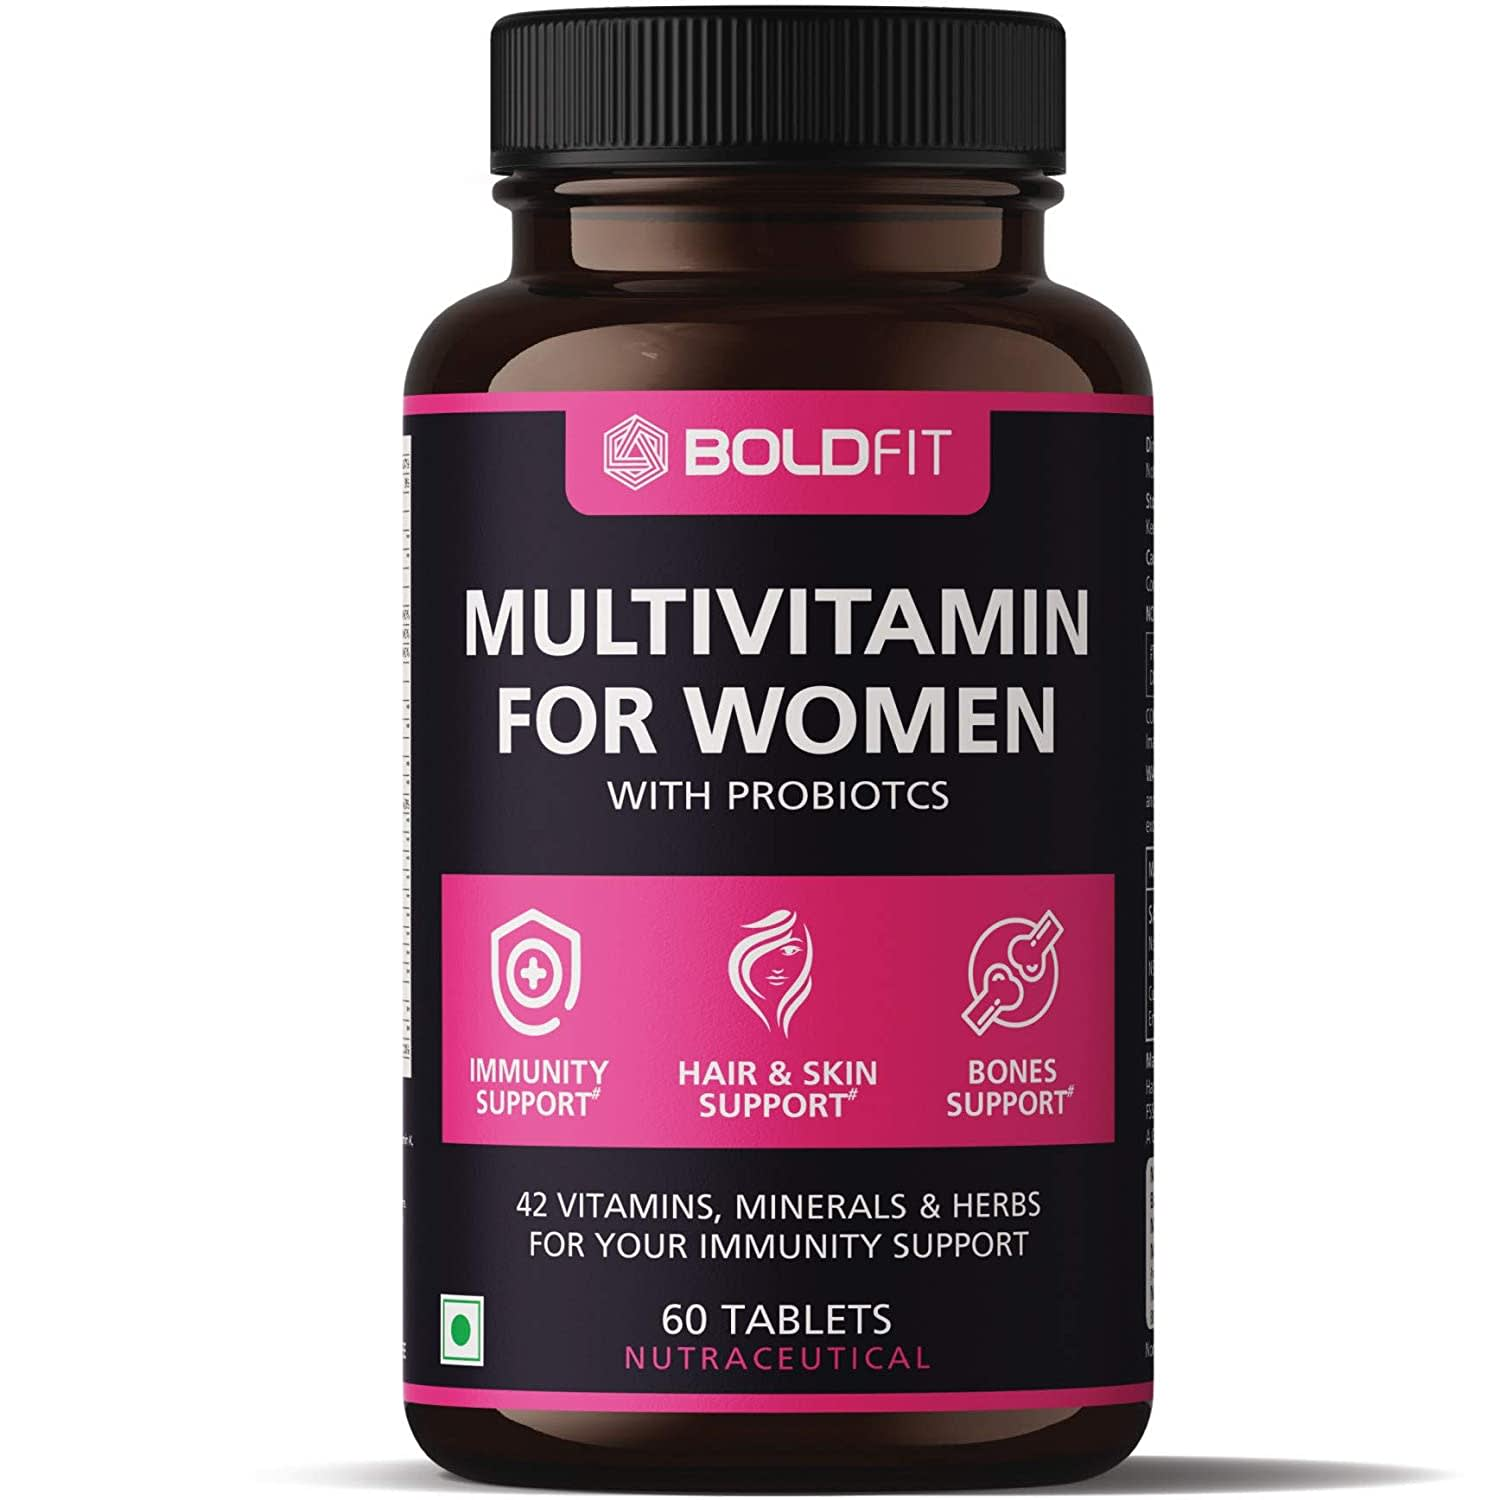 Boldfit Multivitamin For Women With Probiotics Supplement With 42 Vital Ingredients For Immunity, Hair, Skin & Bone Support - (60 Tablets)